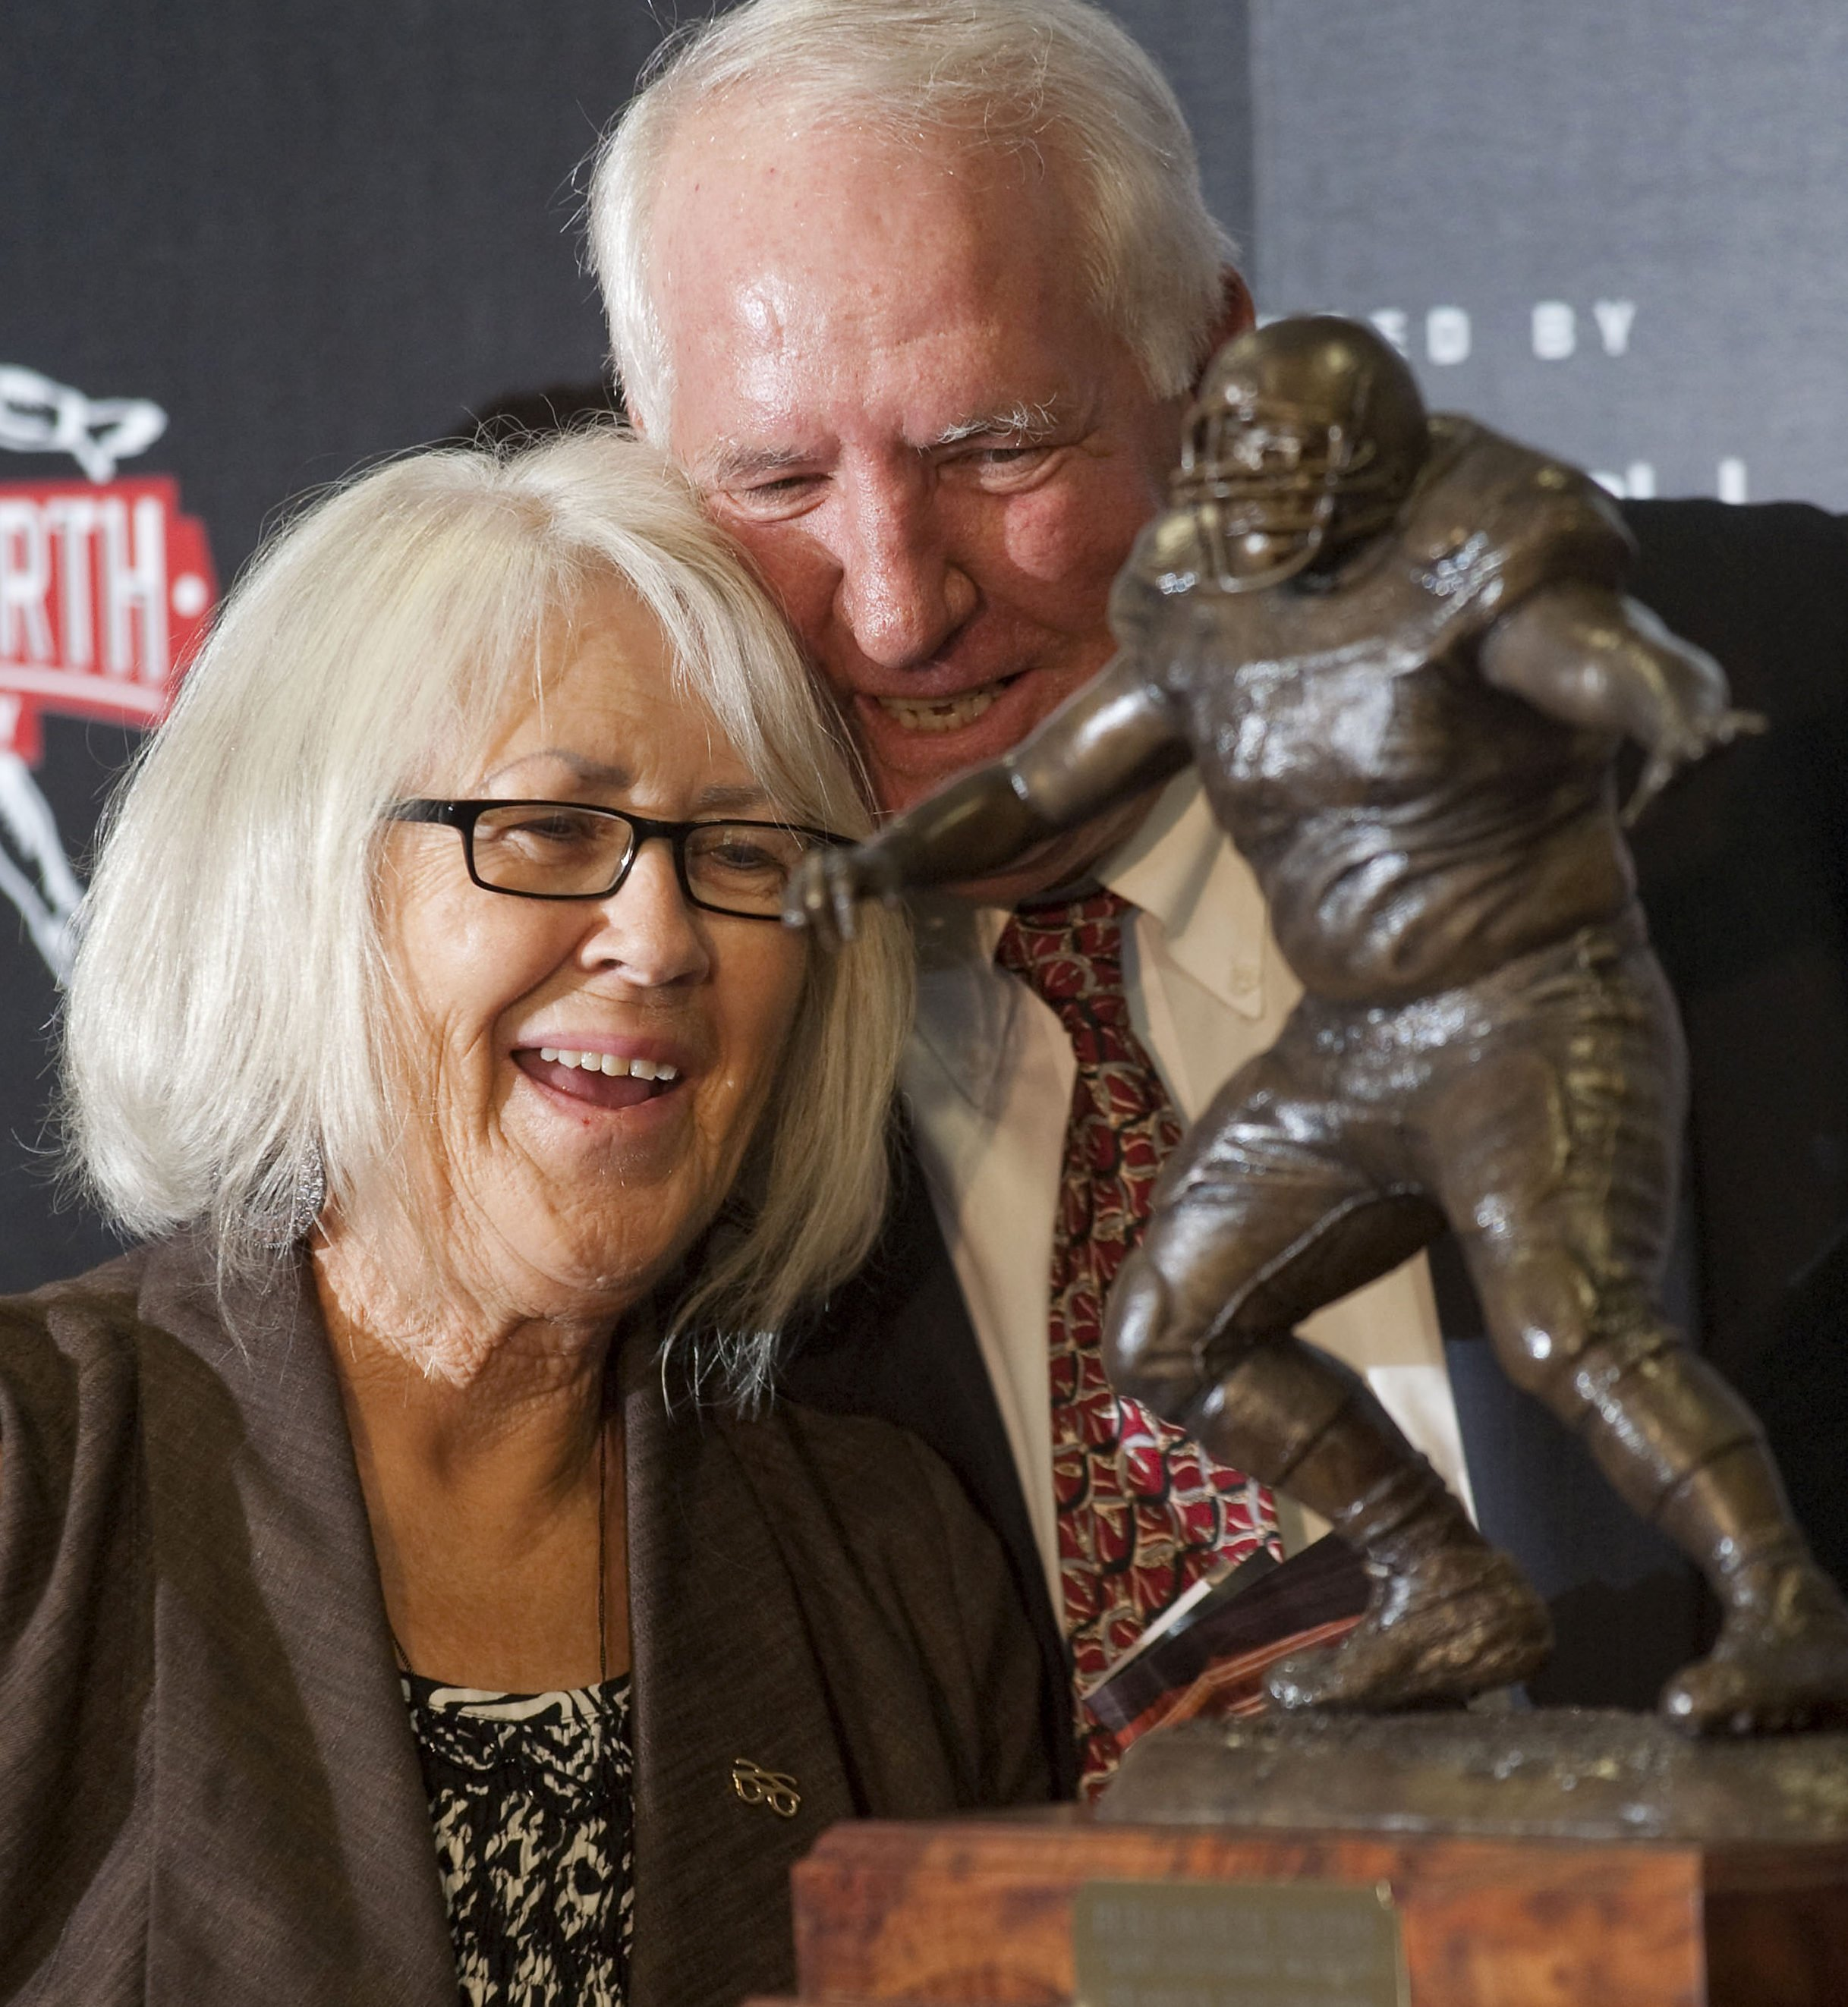 Image result for Former Arkansas head Coach Danny Ford hugs Barbara Burlsworth in August 2010 in Fayetteville after the unveiling of the Burslworth Trophy in honor of her son, Brandon. The trophy is given annually to a college player who started his career as a walk-on. (AP photo by Beth Hall)